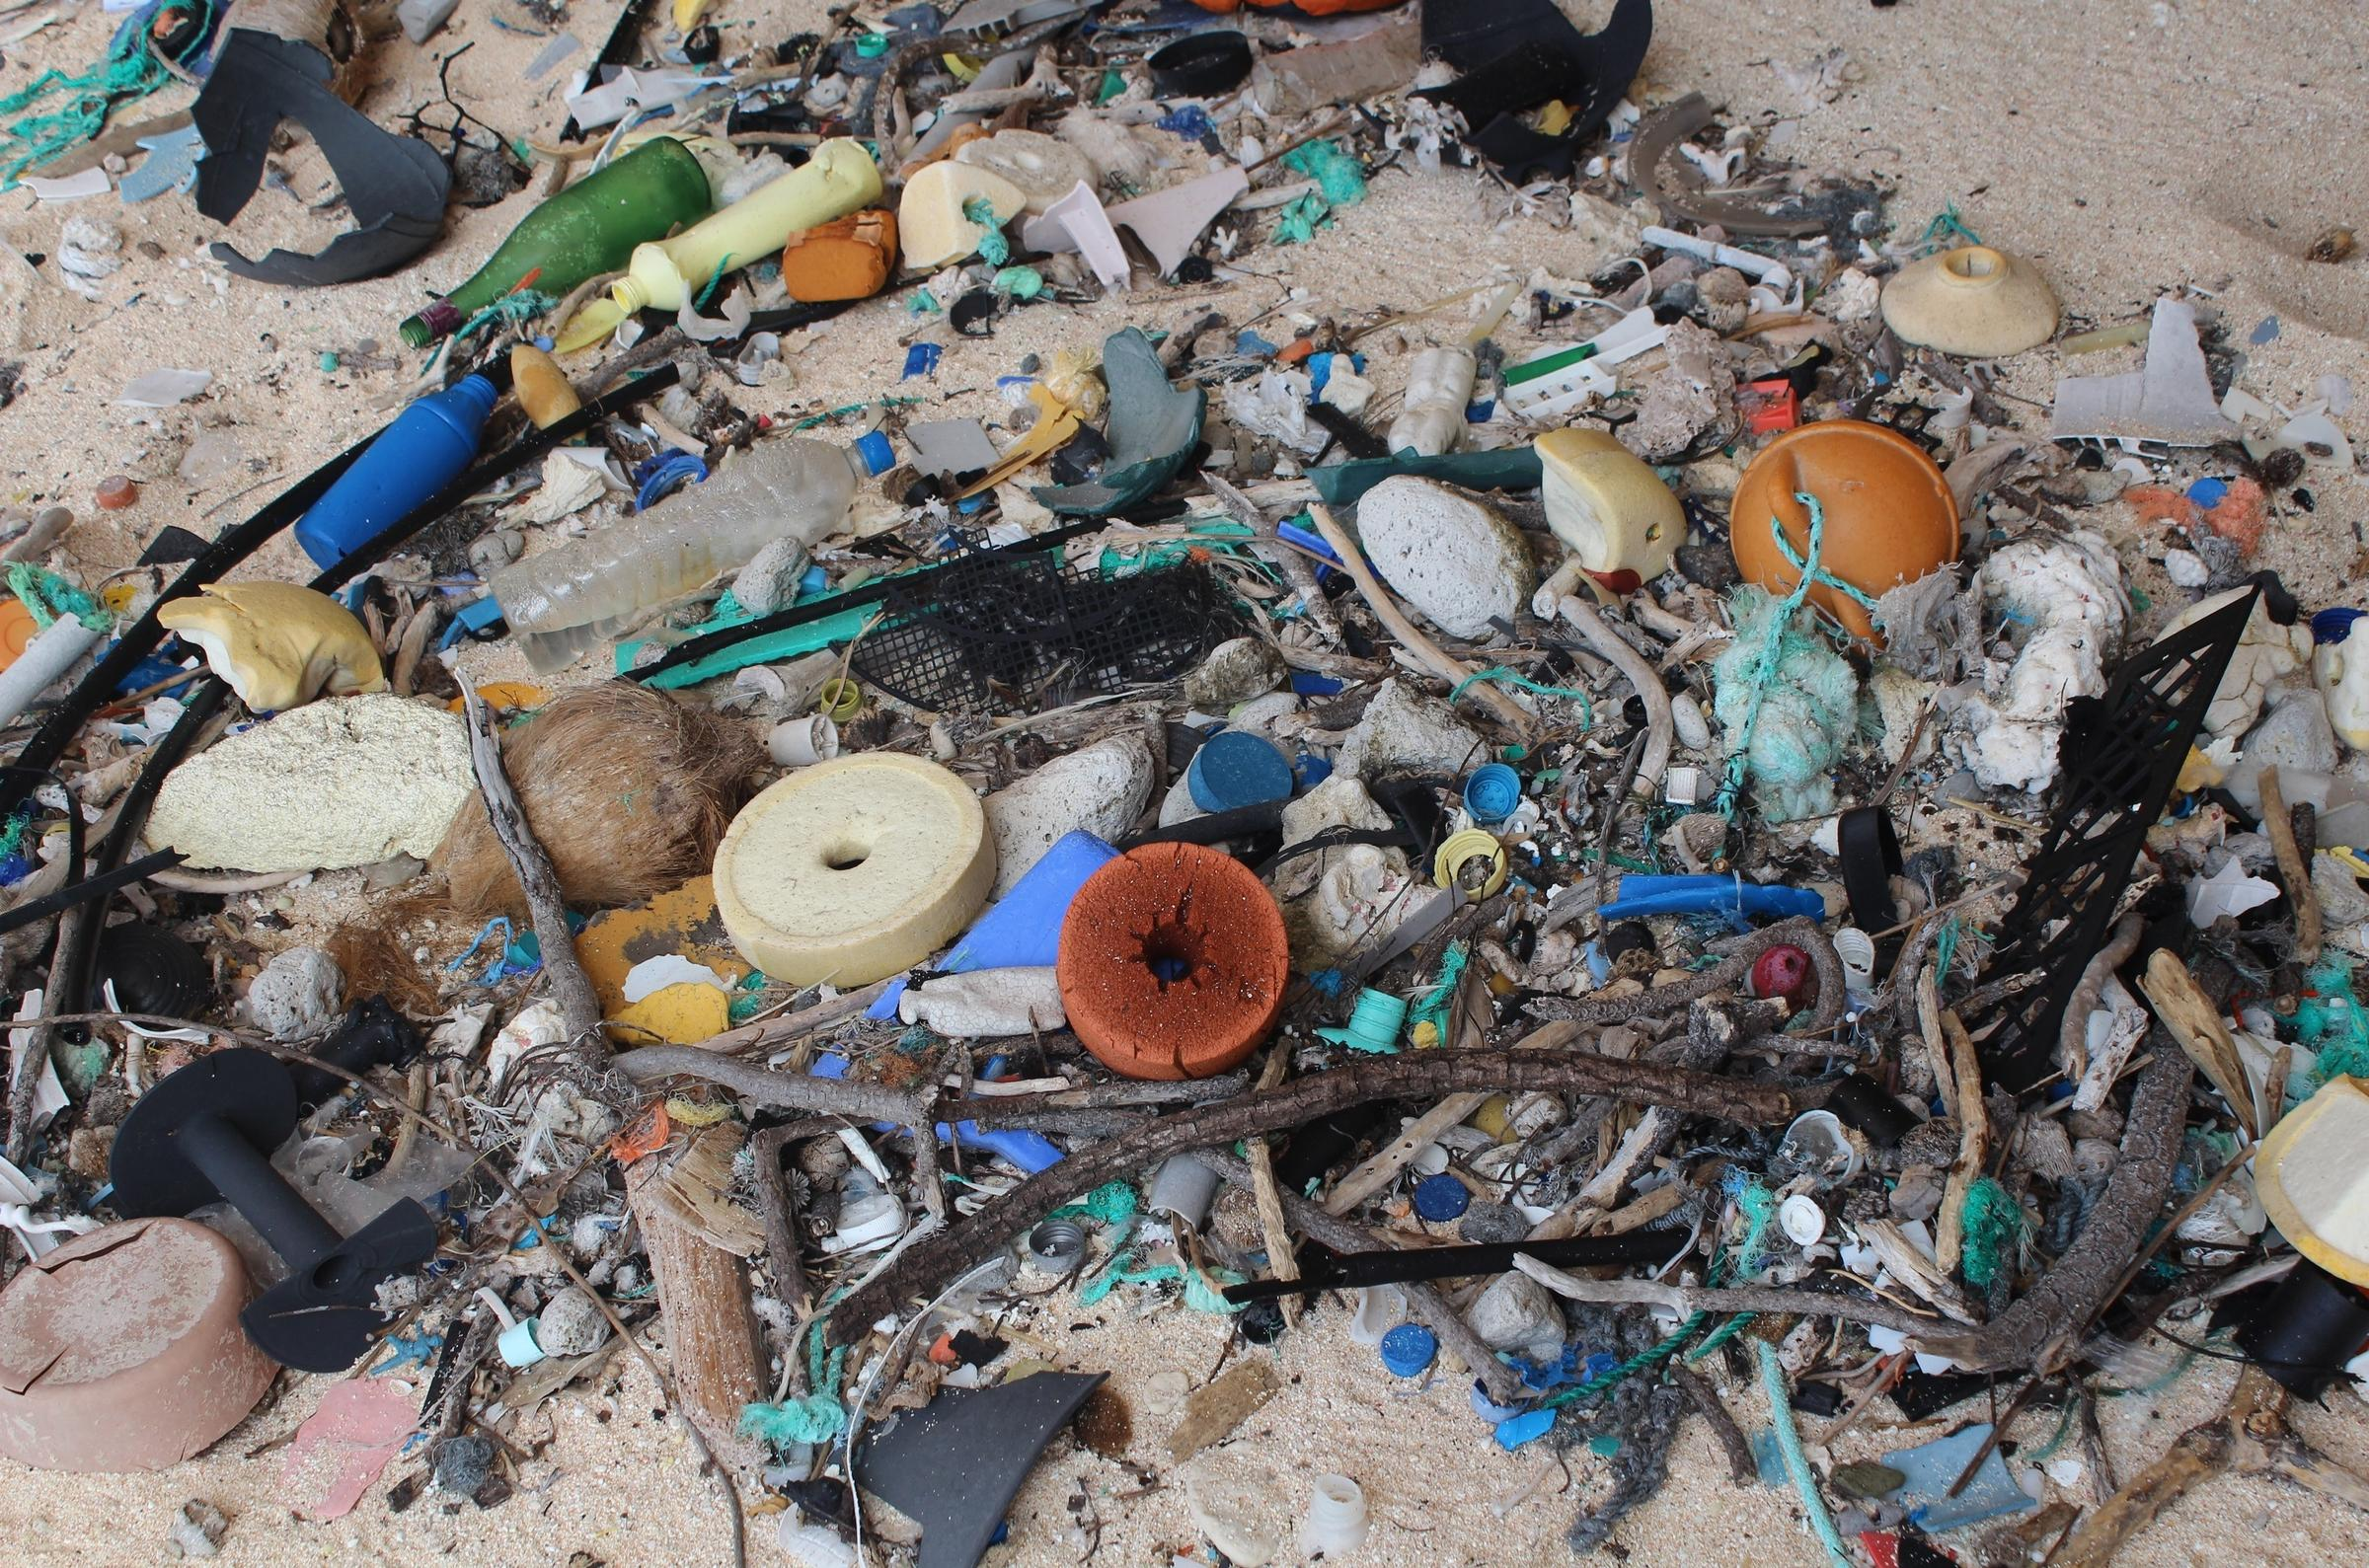 Remote Pacific island turns into dump with 38 million pieces of trash